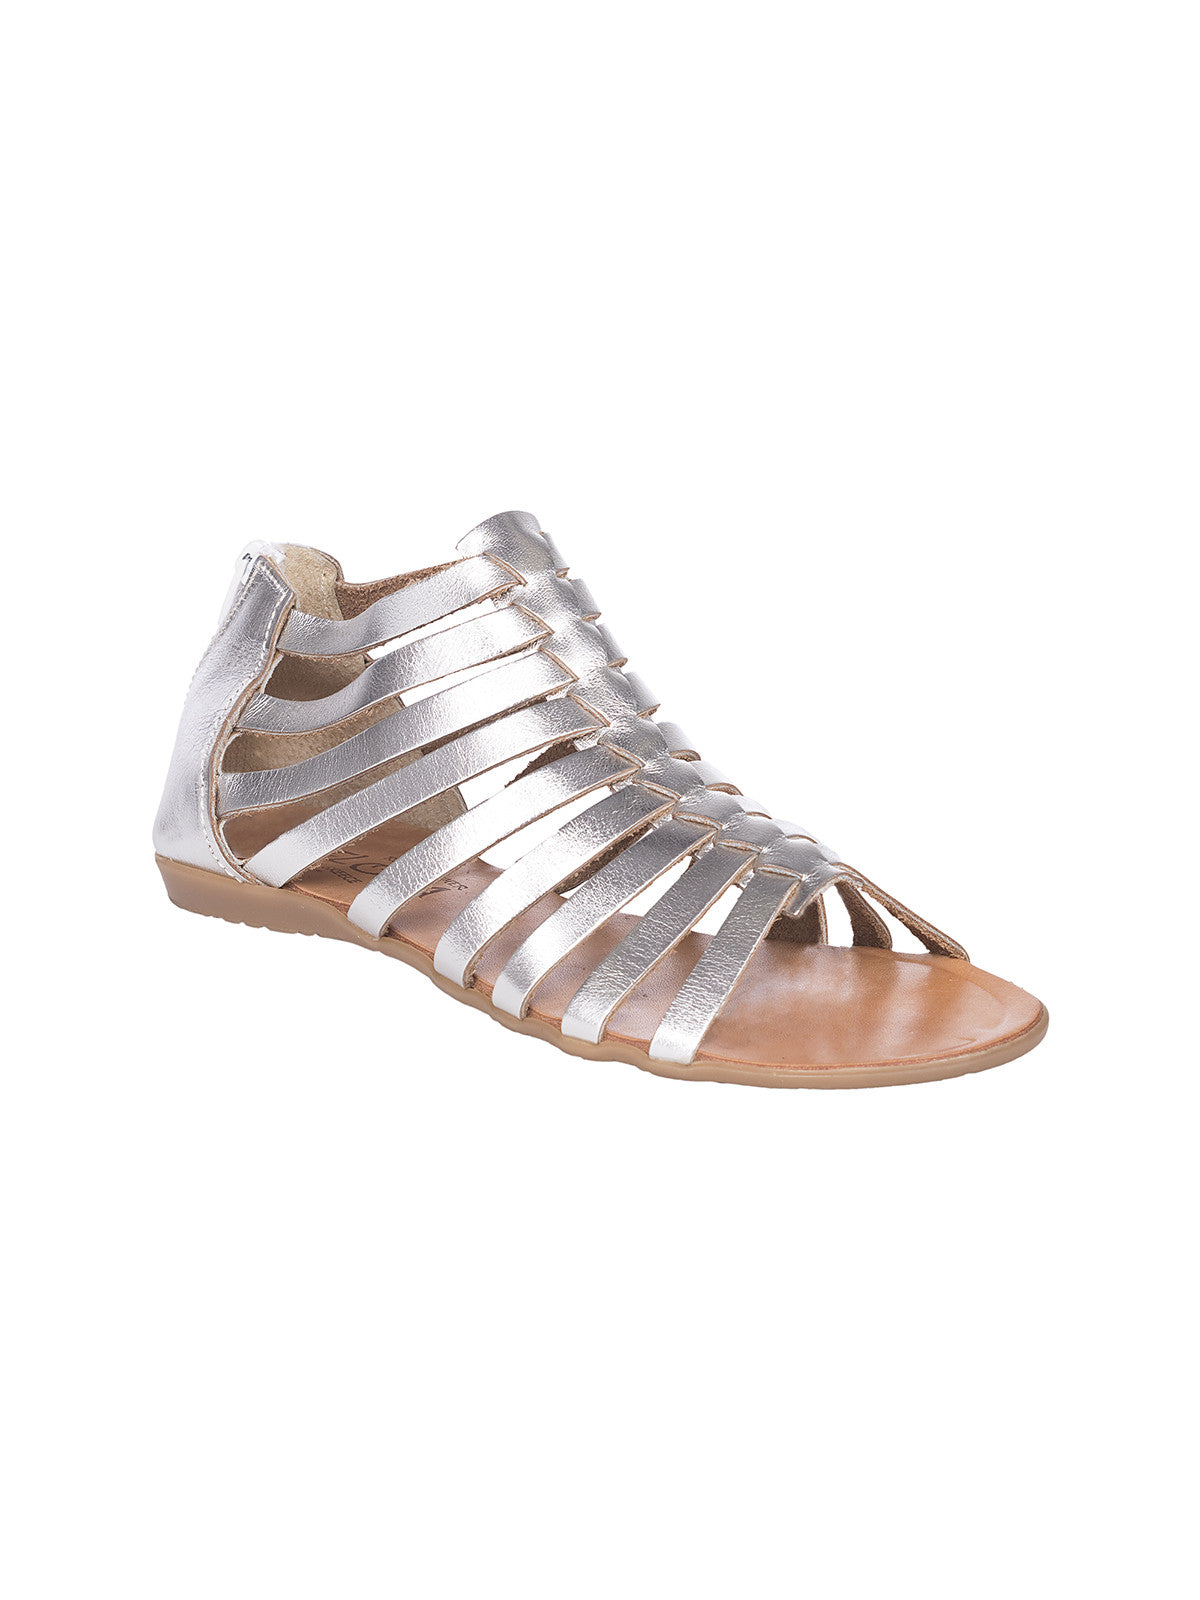 Artemis Greek Leather Sandals